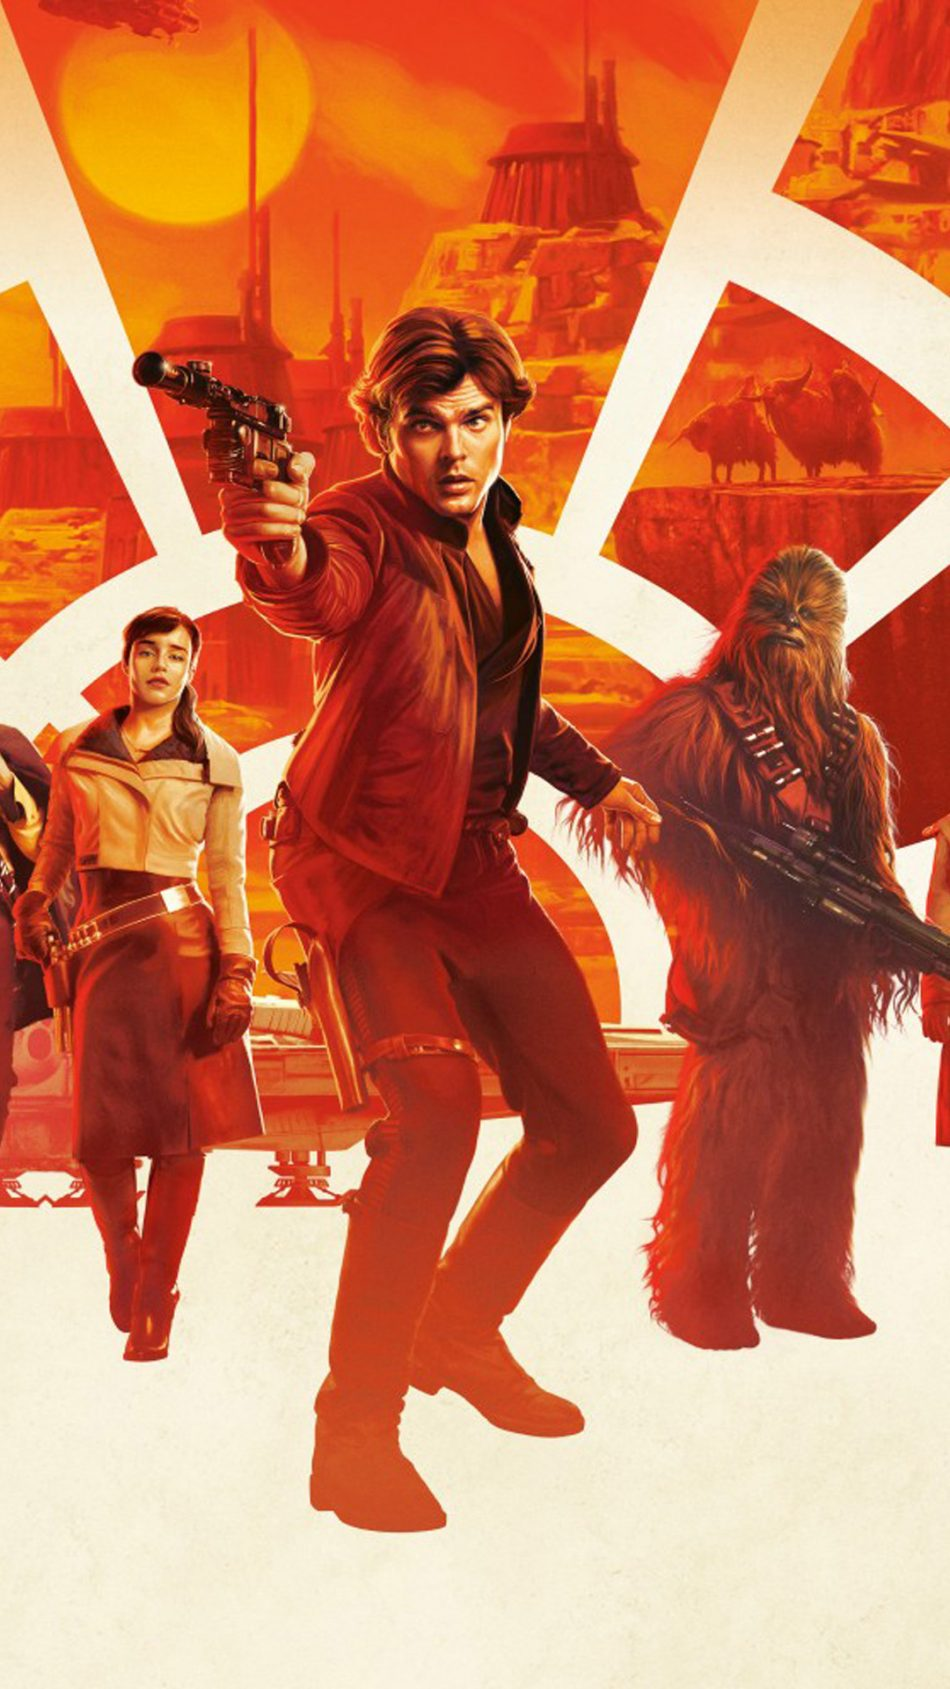 Solo A Star Wars Story Free 4k Ultra Hd Mobile Wallpaper